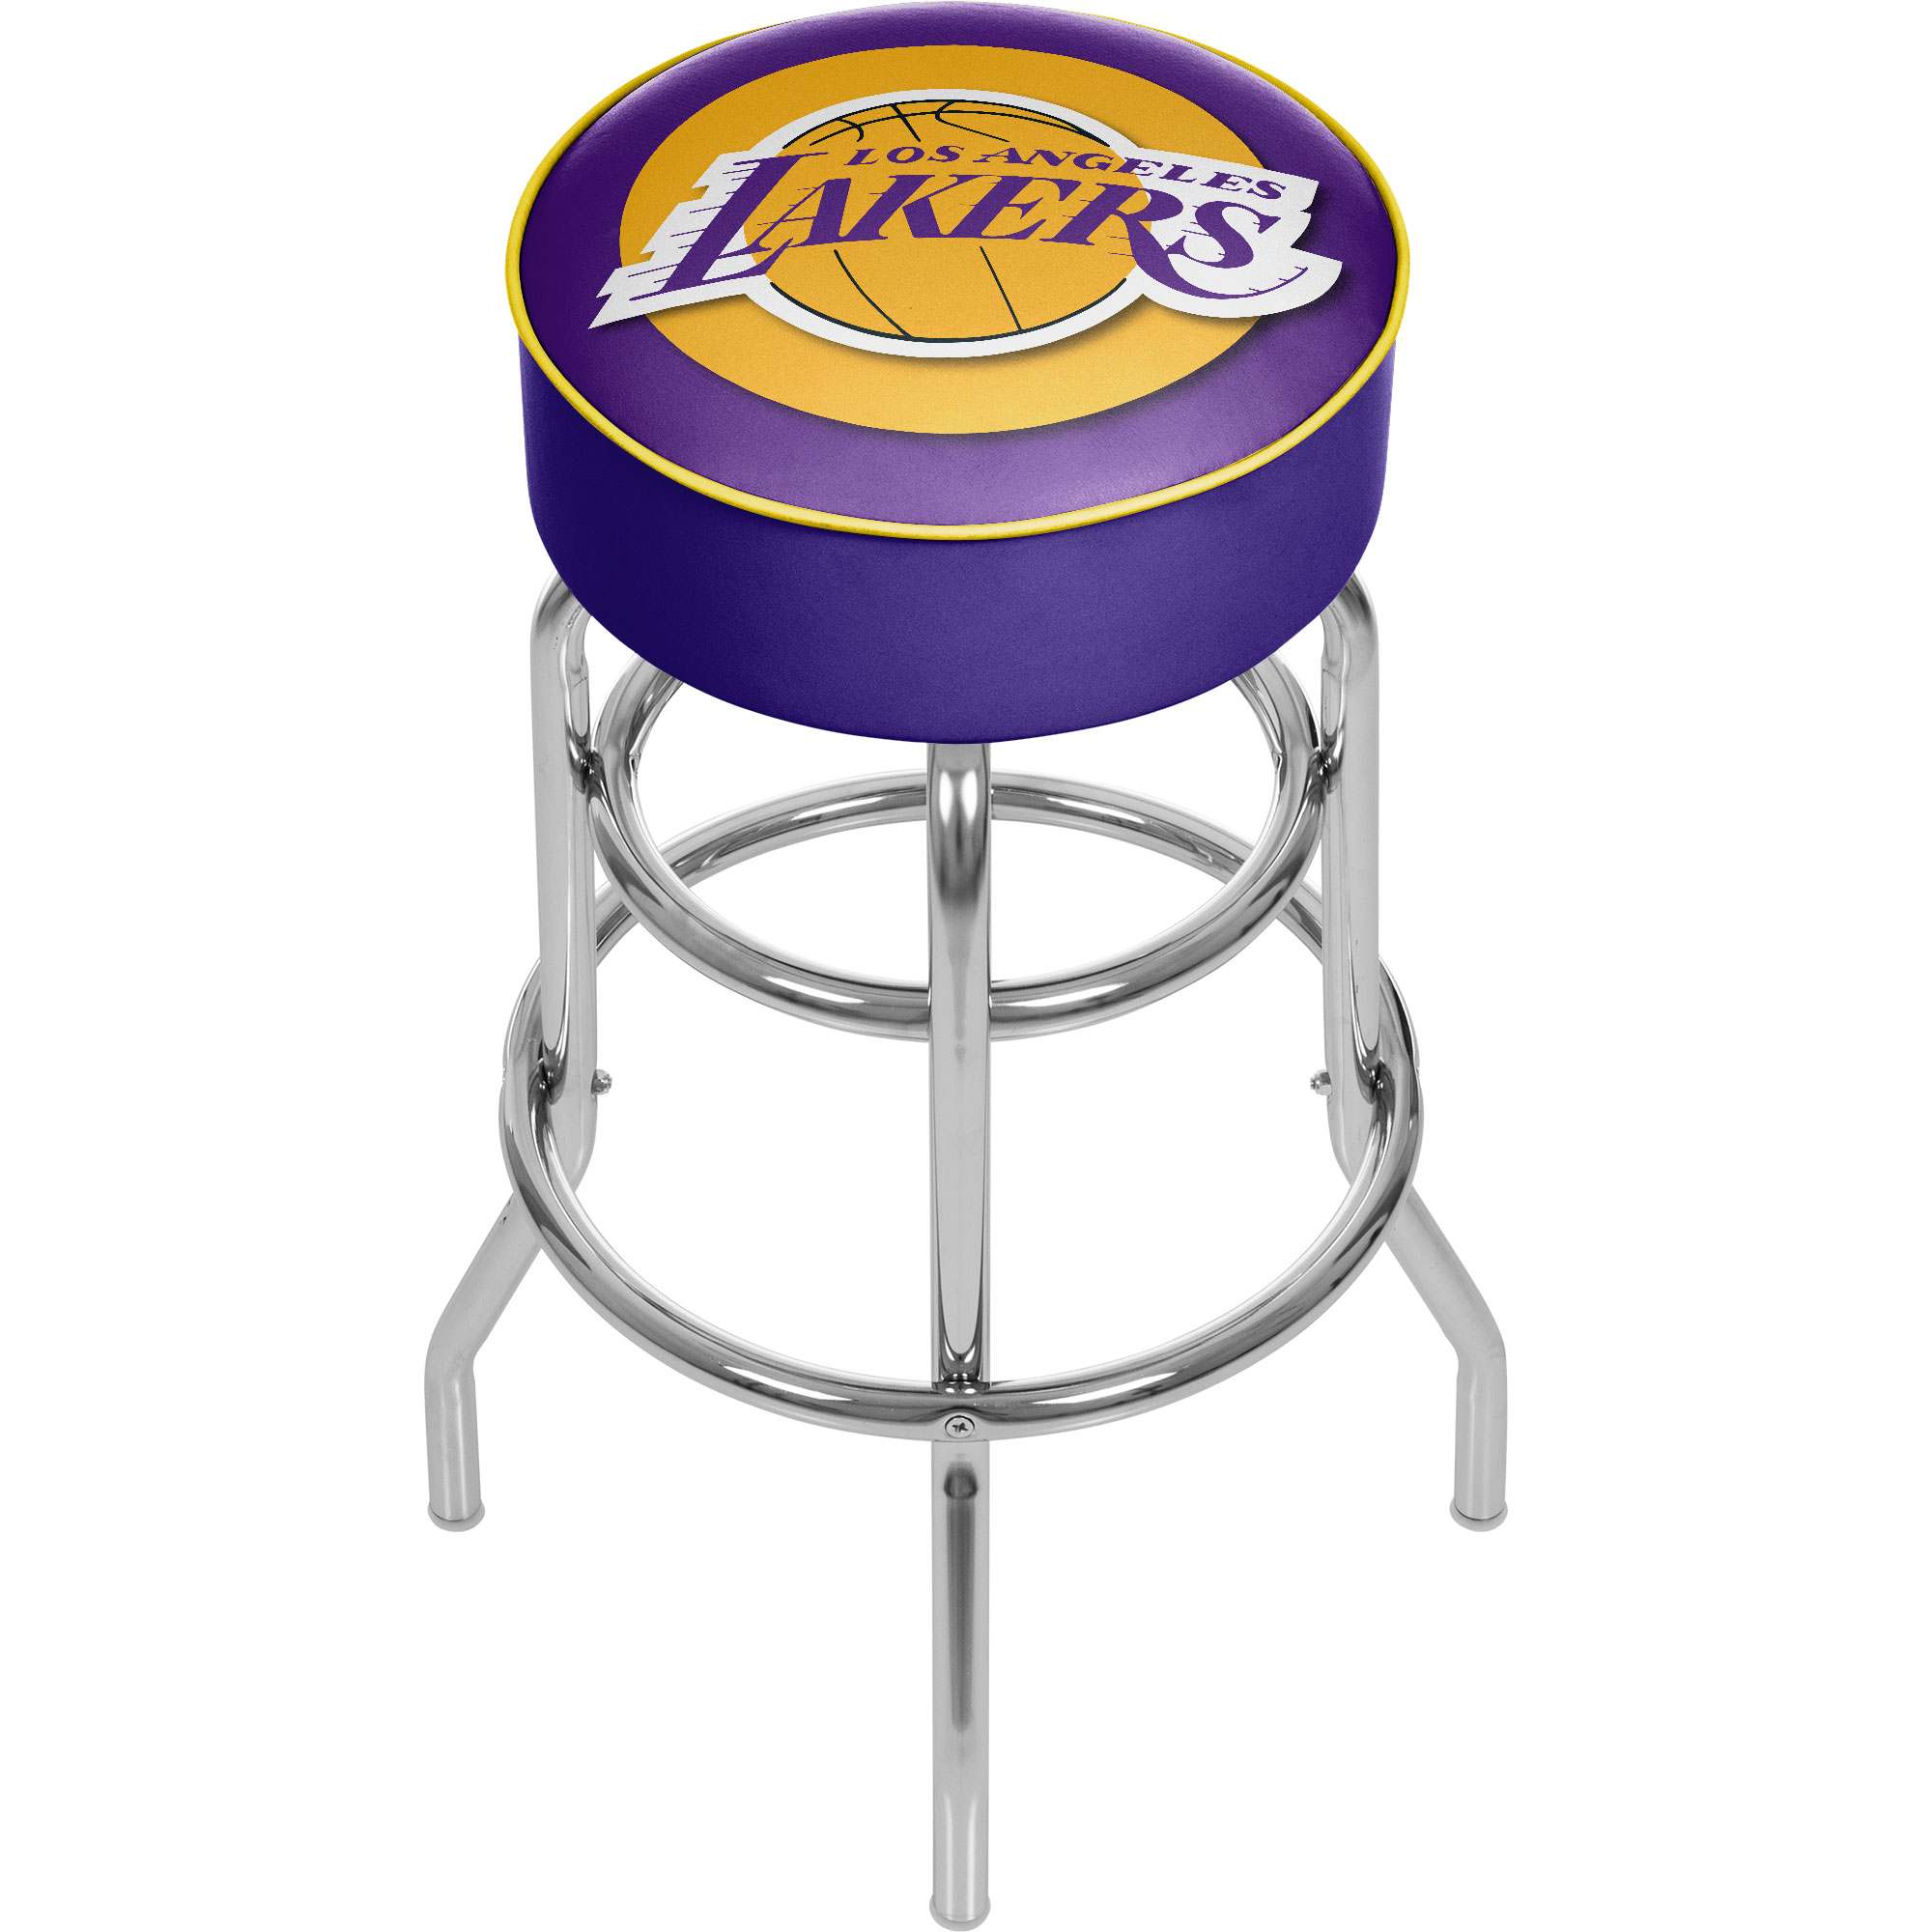 Los Angeles Lakers NBA Padded Swivel Bar Stool 30 Inches High